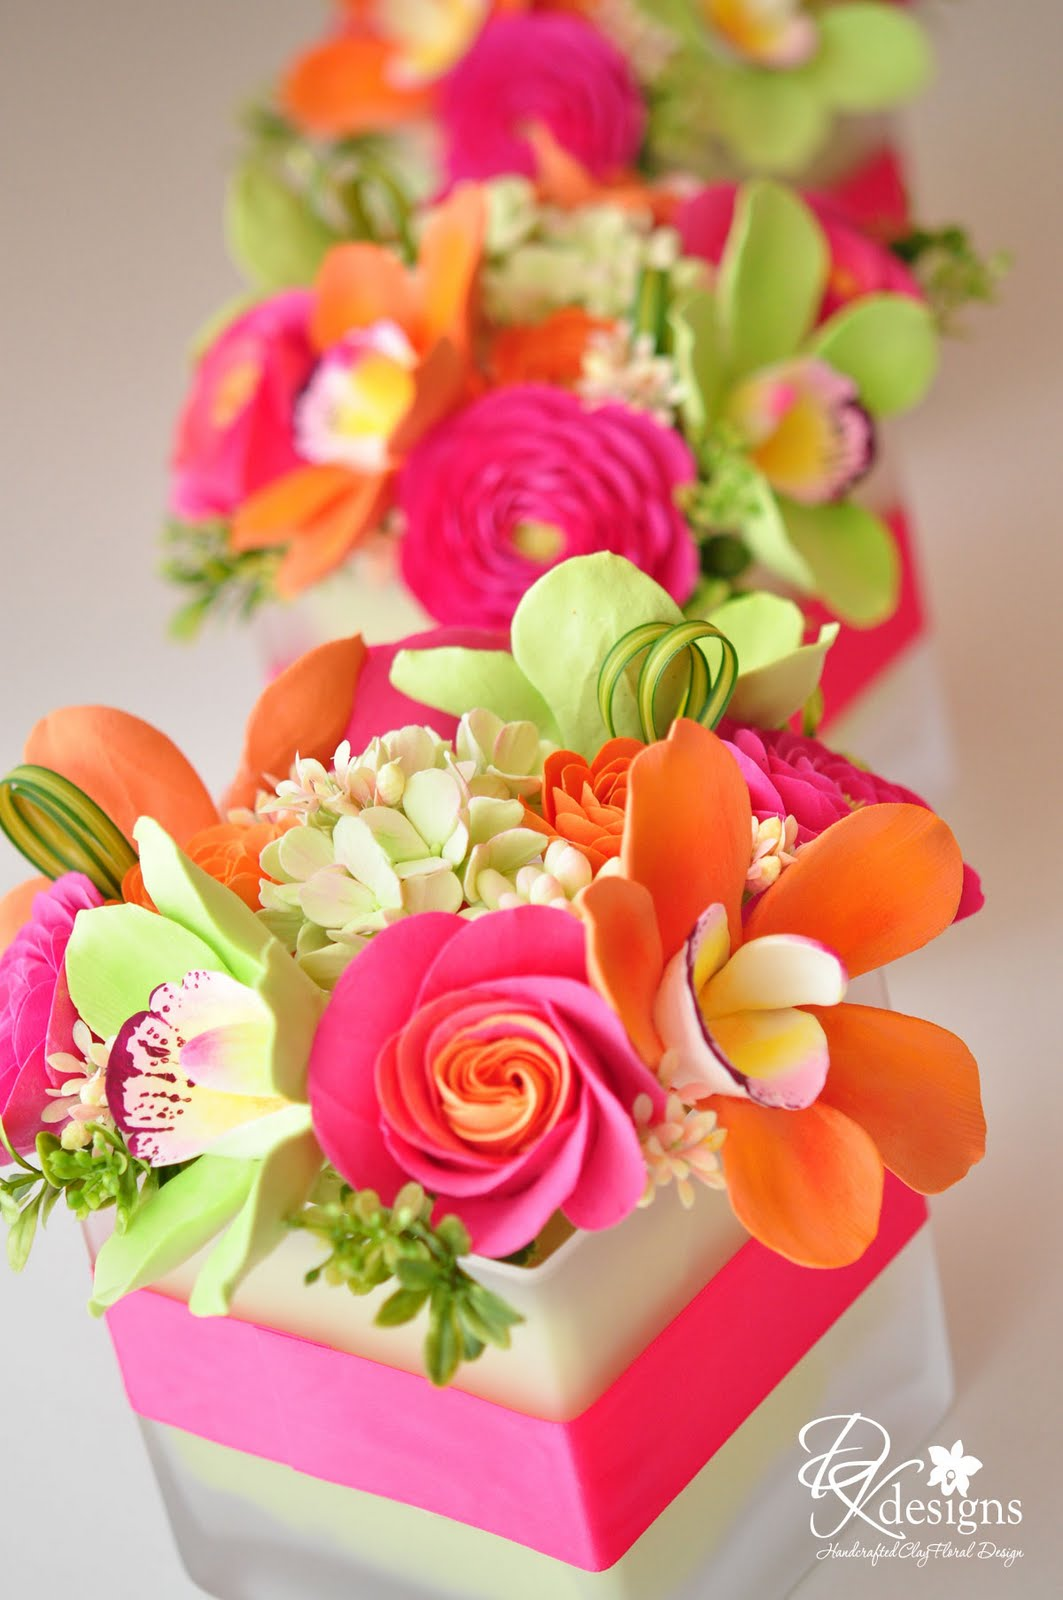 pink orange and green flowers for a destination wedding in jamaica dk designs. Black Bedroom Furniture Sets. Home Design Ideas